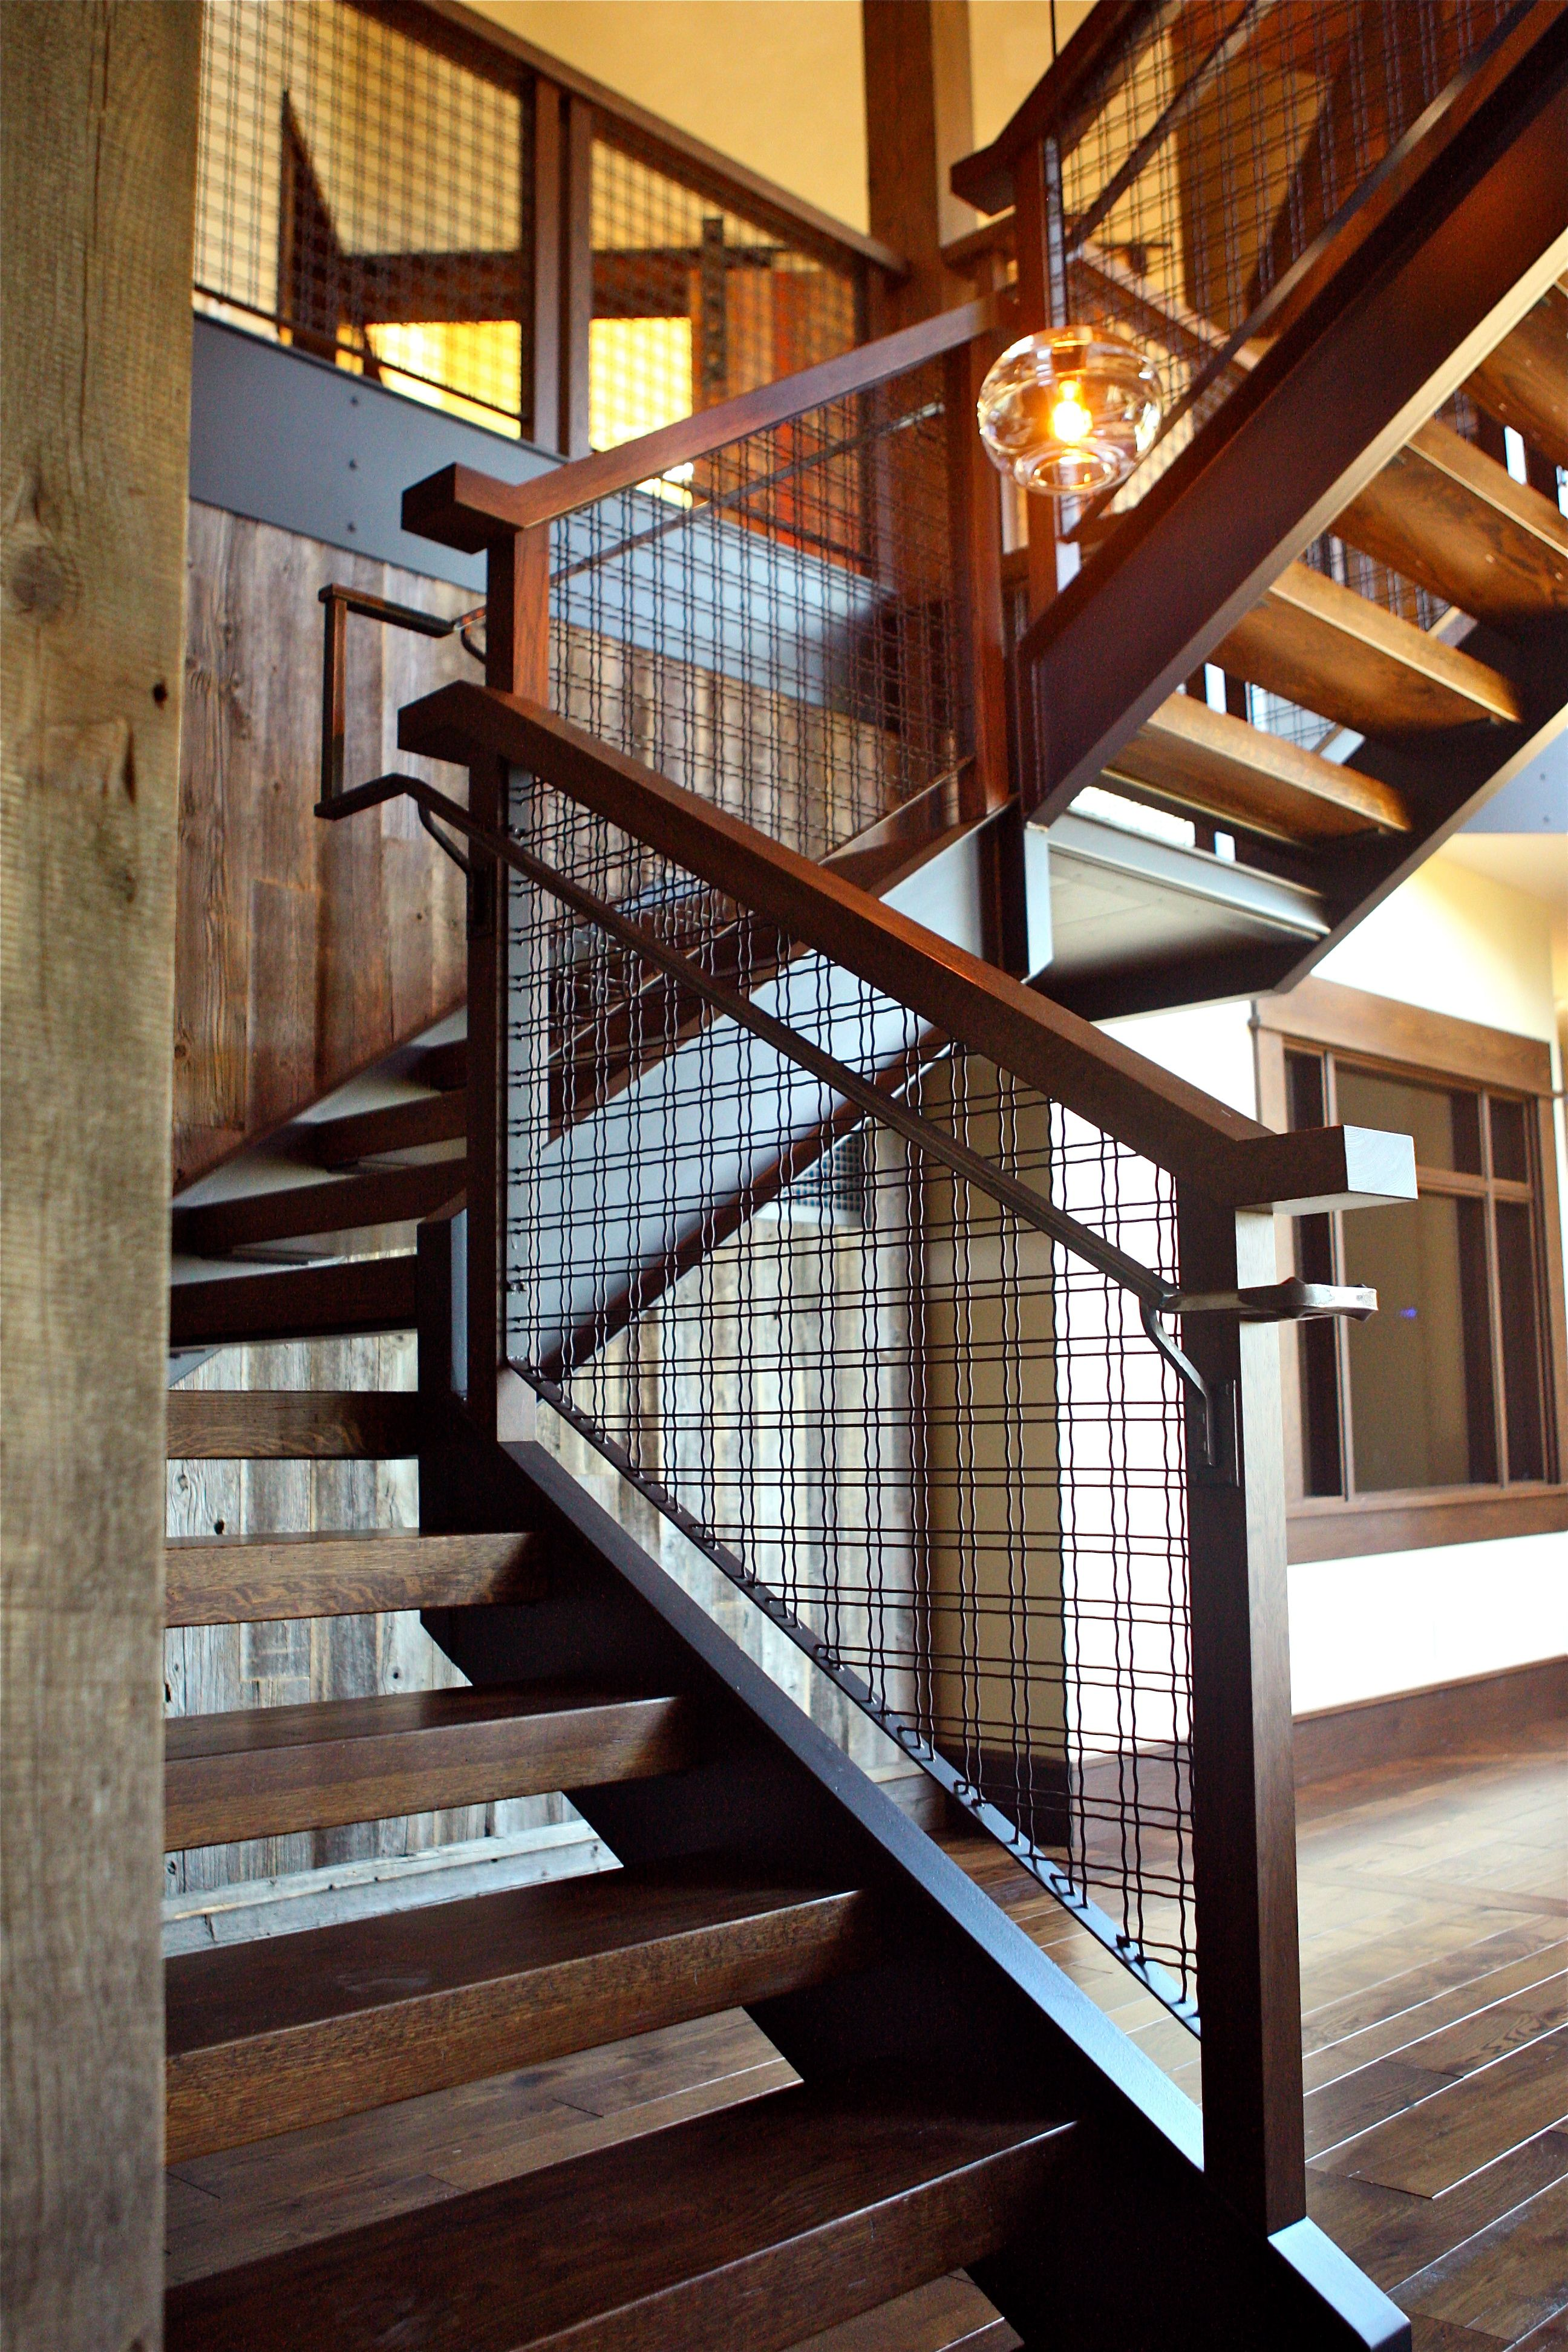 Pin By Banker Wire On Staircases And Railings | Pinterest | Staircases,  Industrial And House